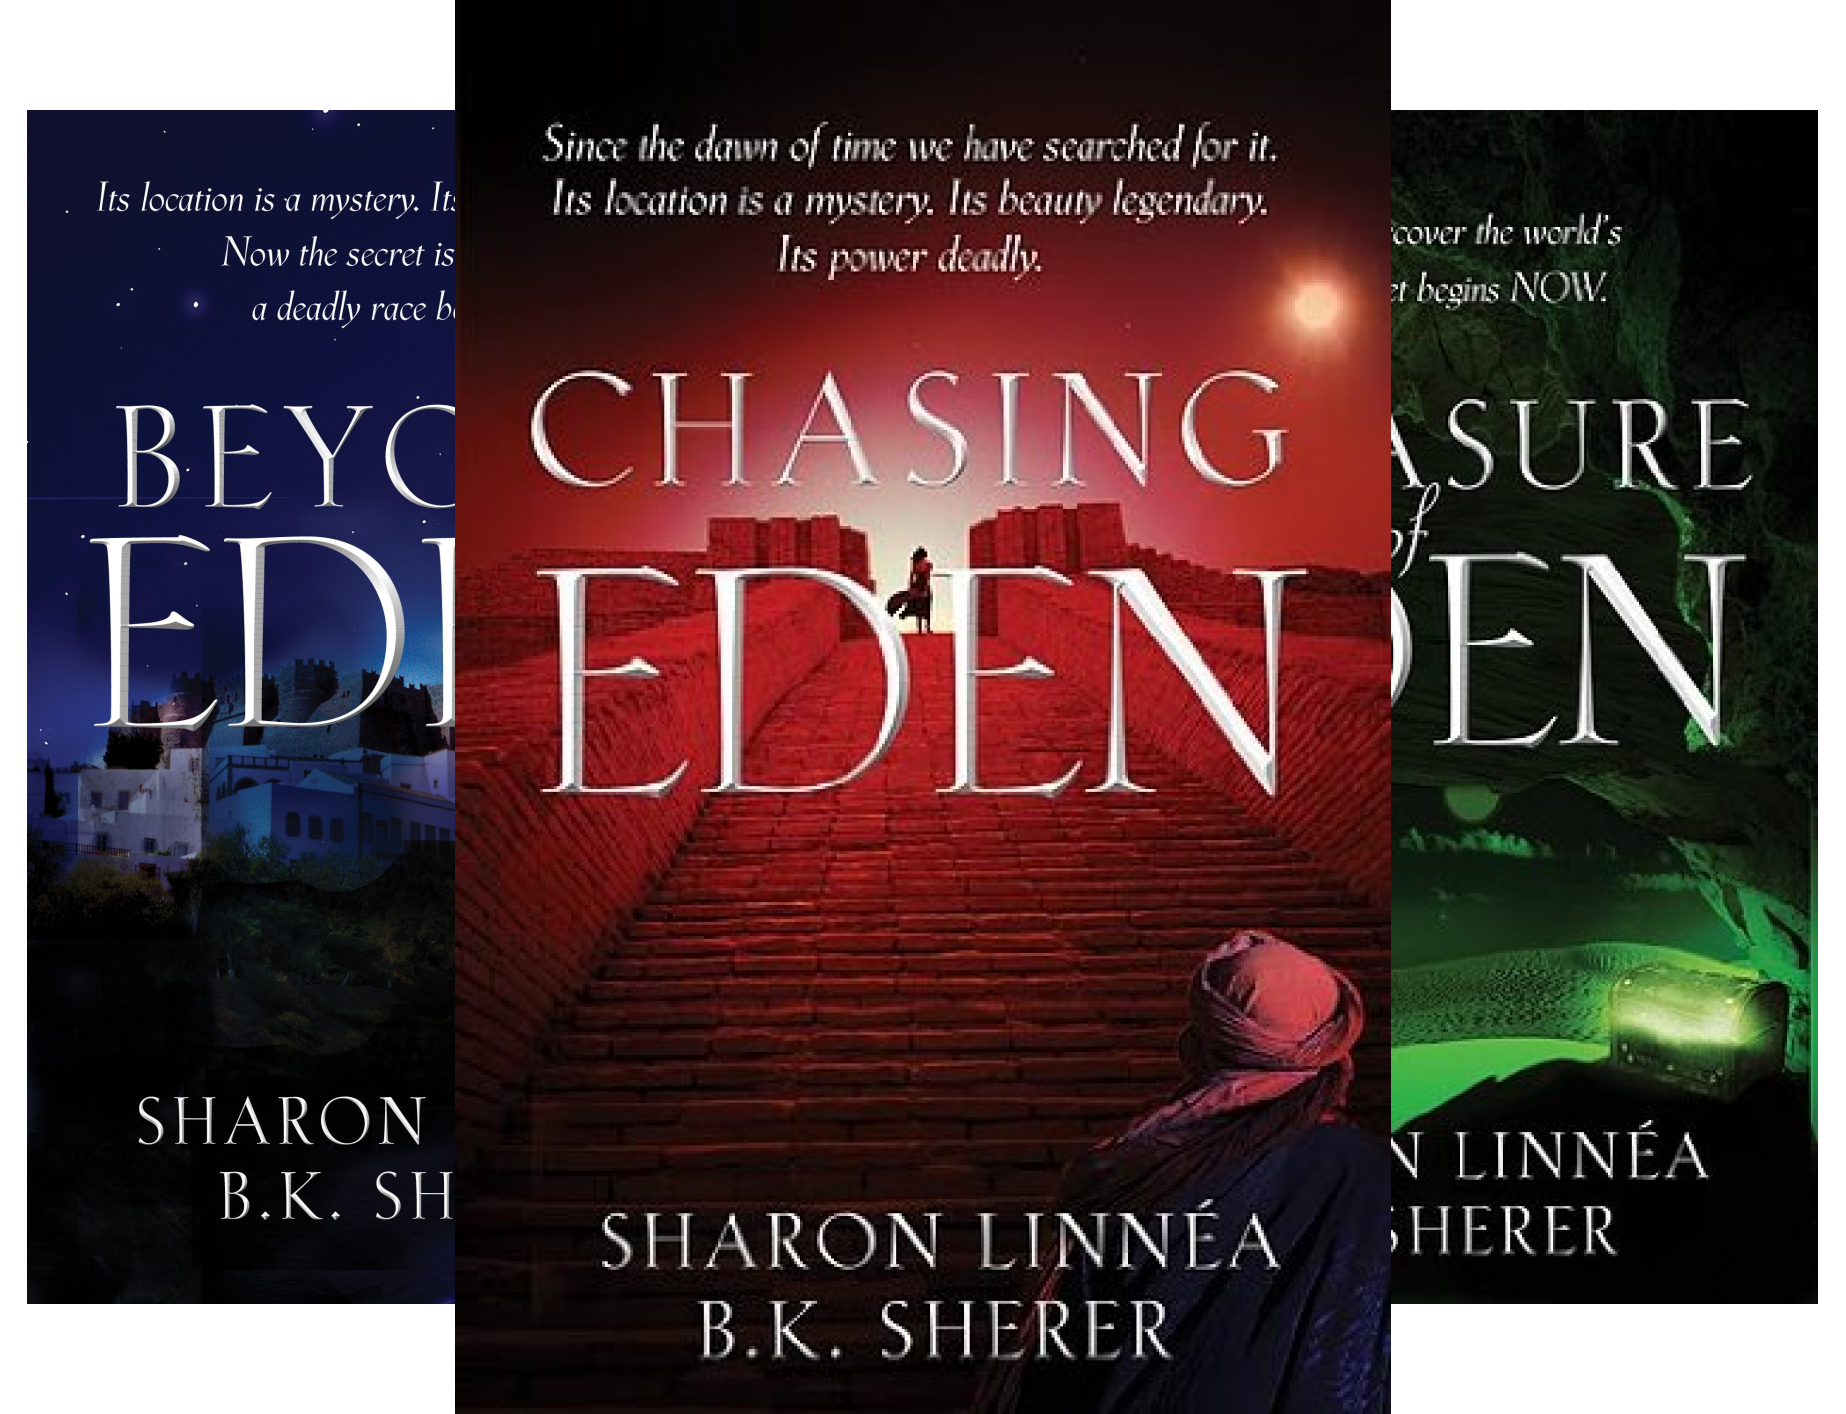 a-project-eden-thriller-4-book-series